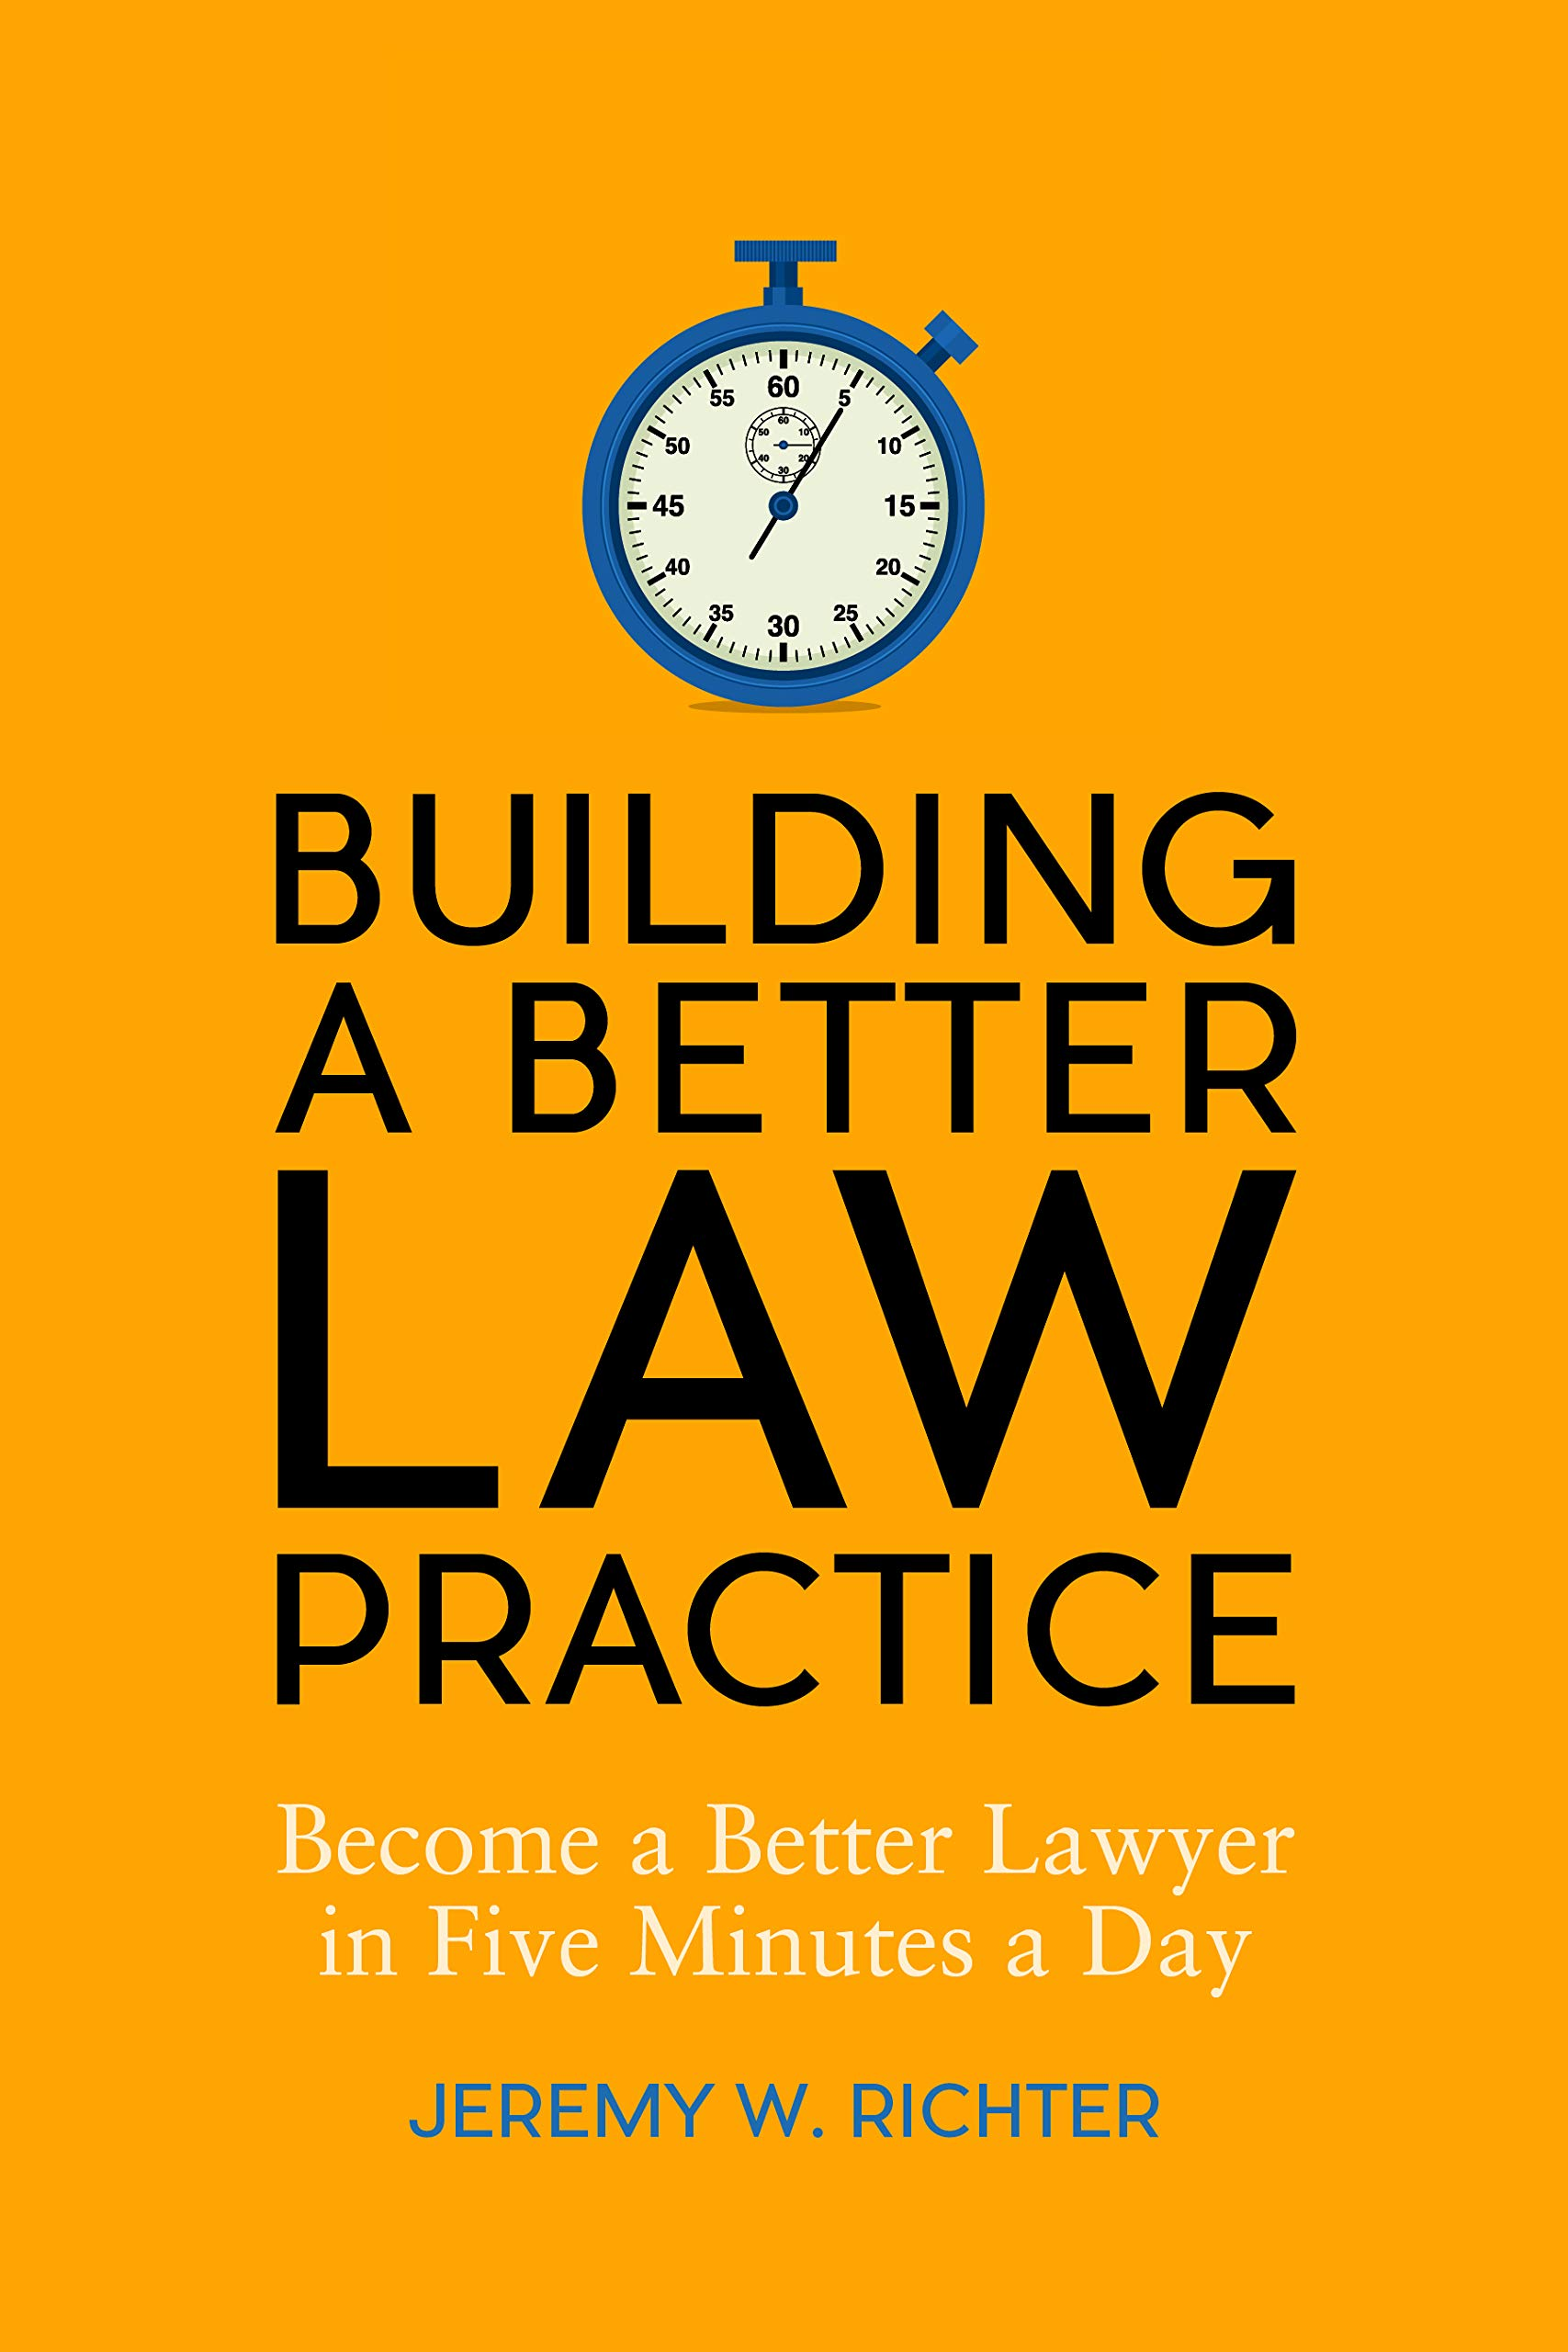 Building a Better Law Practice: Become a Better Lawyer in Five Minutes a Day, Jeremy Richter, ABA